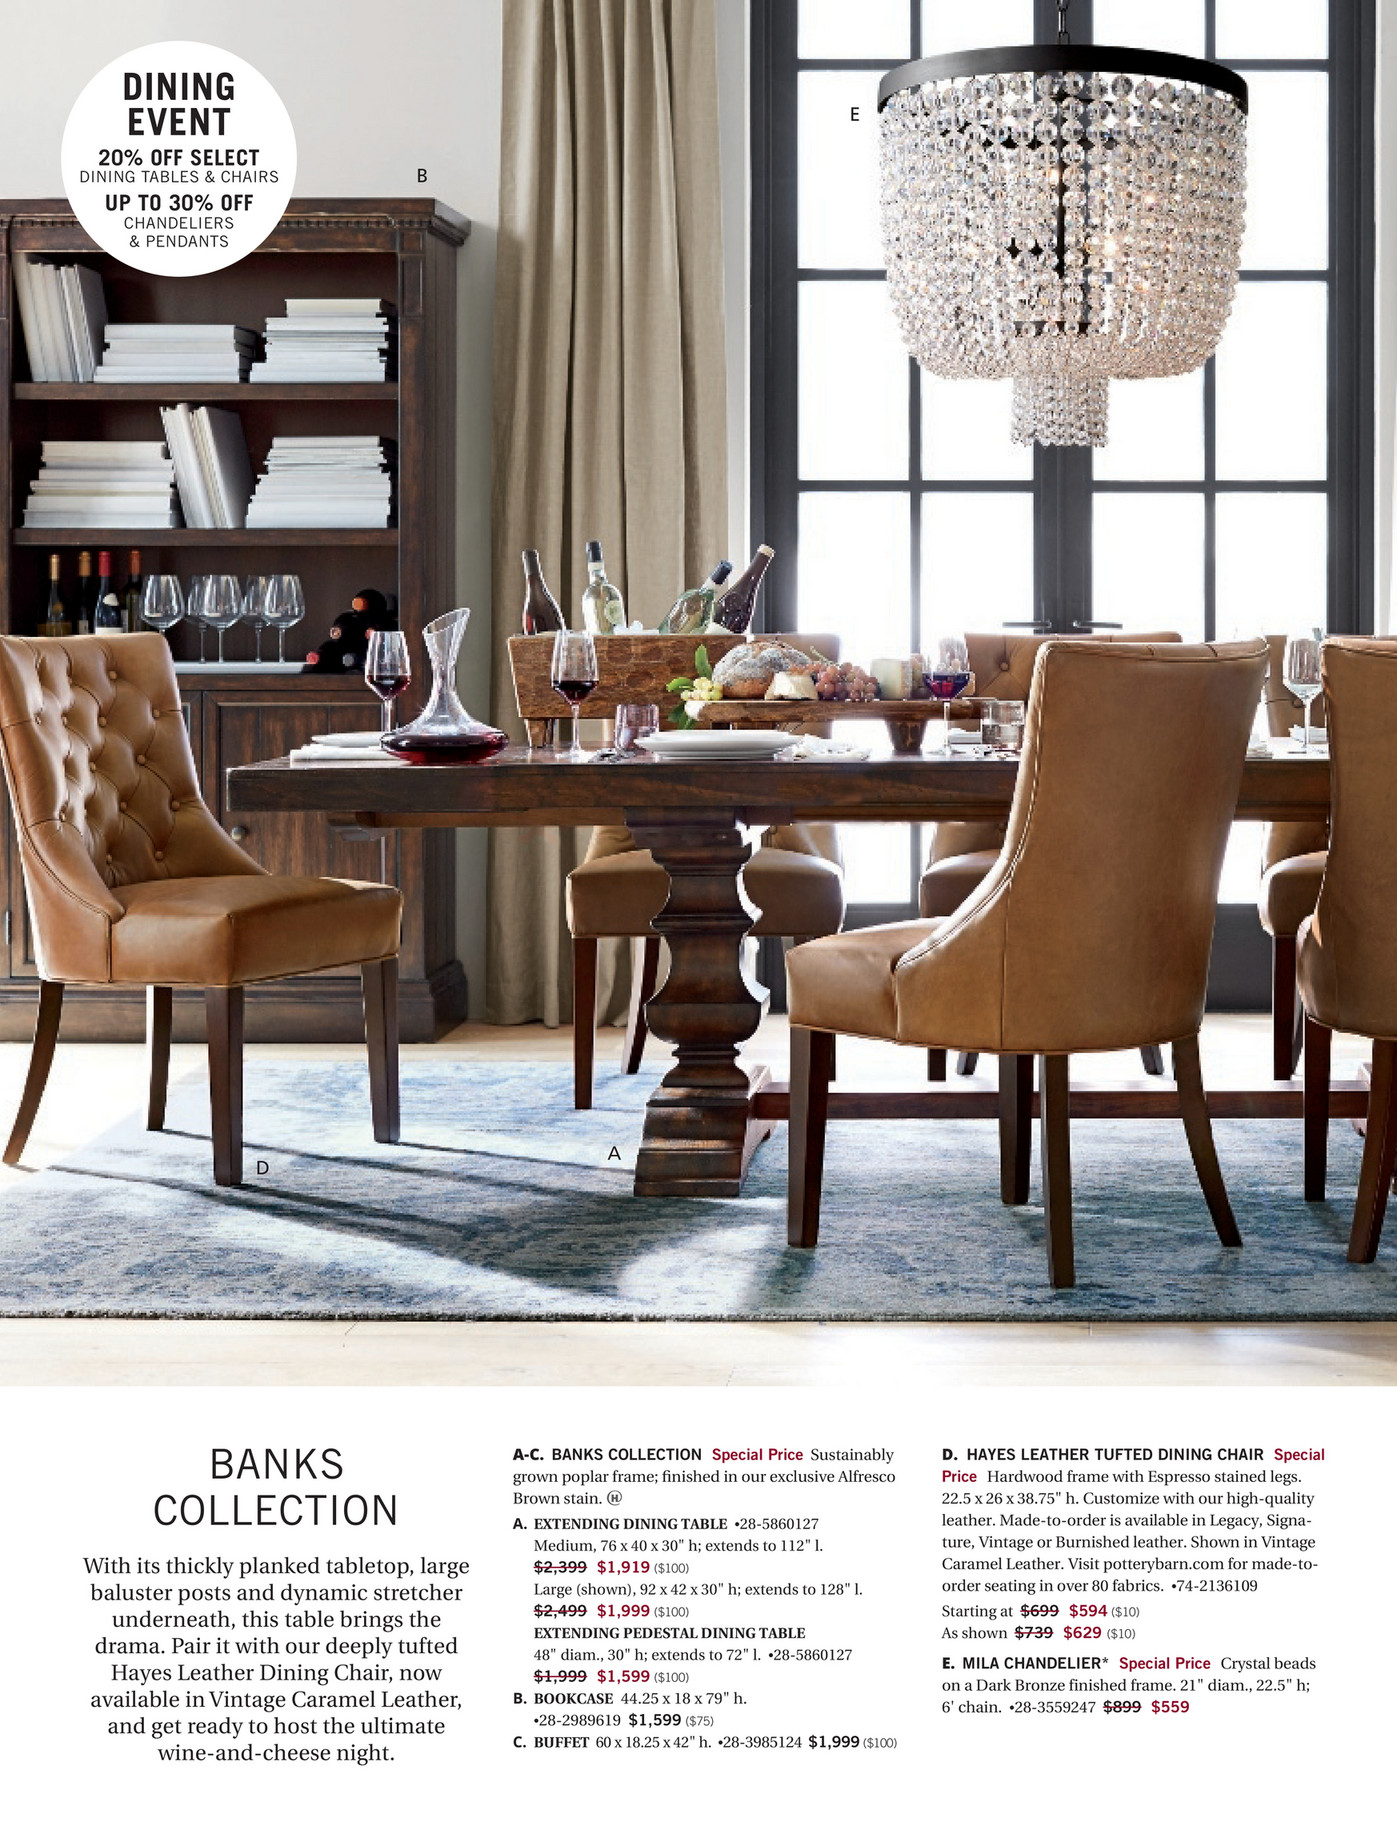 Pottery Barn Early Holiday 2016 Page 60 61 From The Dining Room Buffet Price